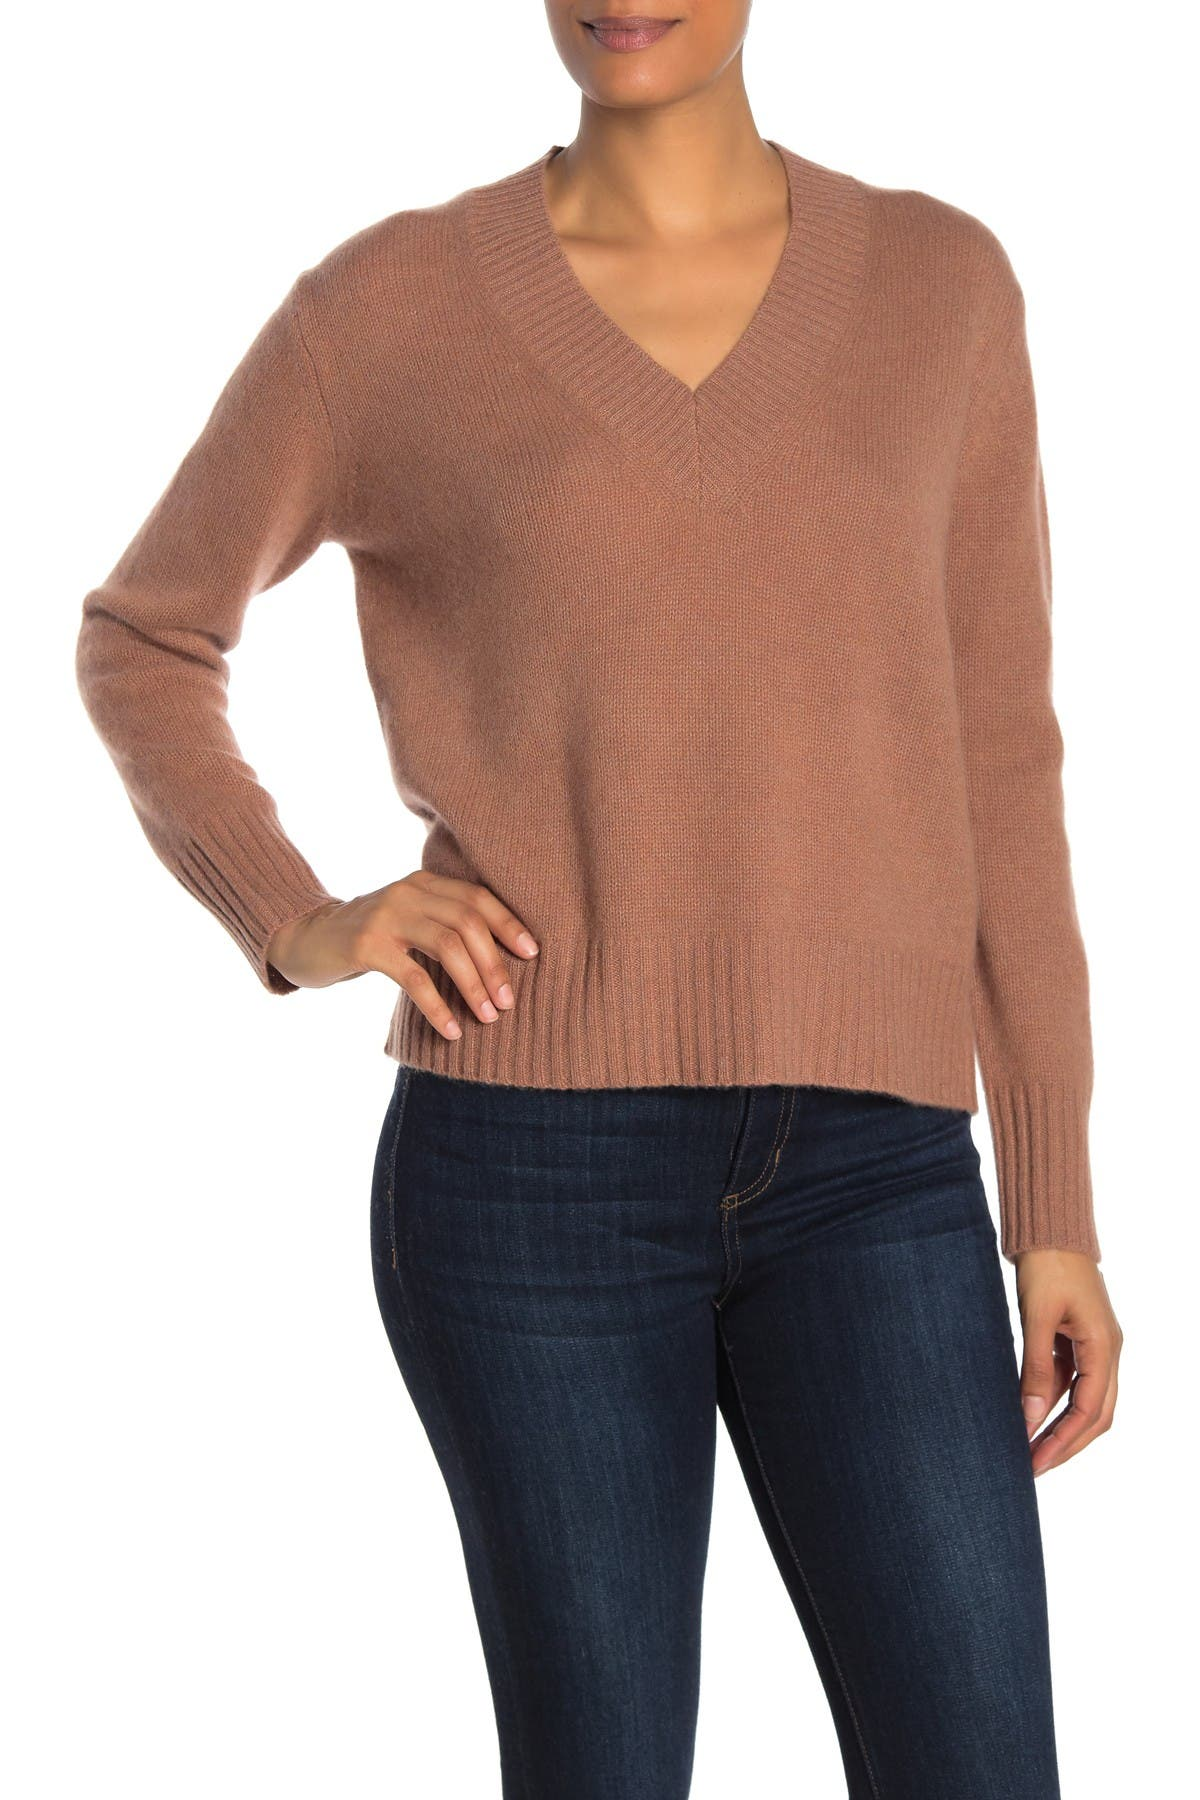 Image of 360 Cashmere Daisy Cashmere Sweater